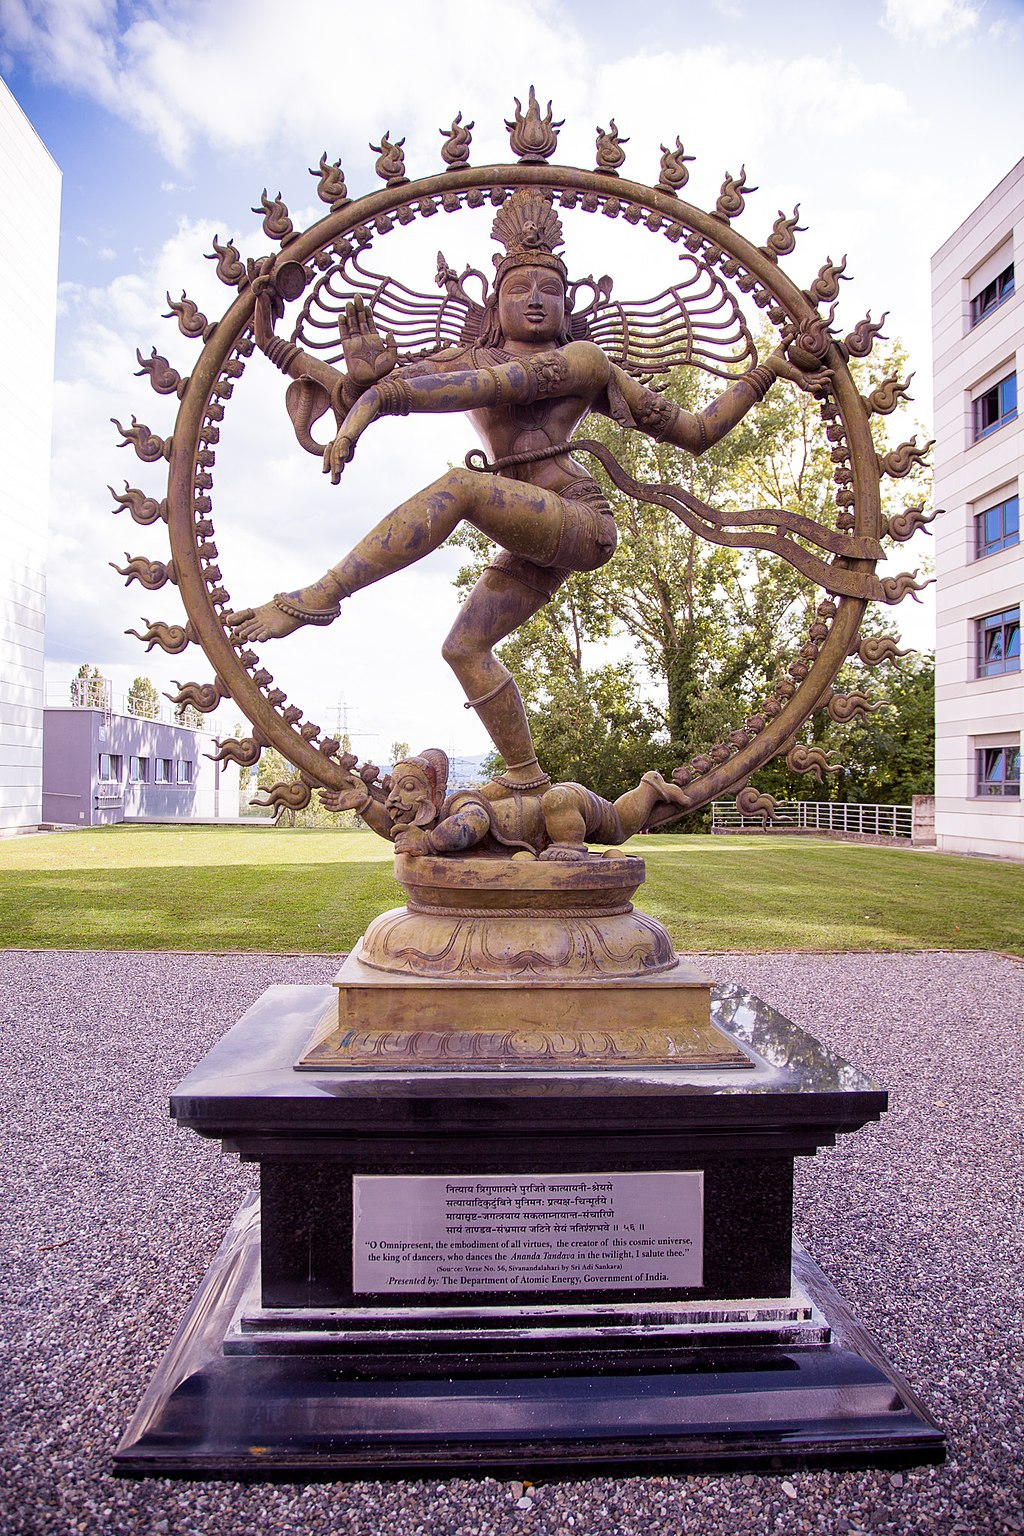 Shiva's statue at CERN engaging in the Nataraja dance